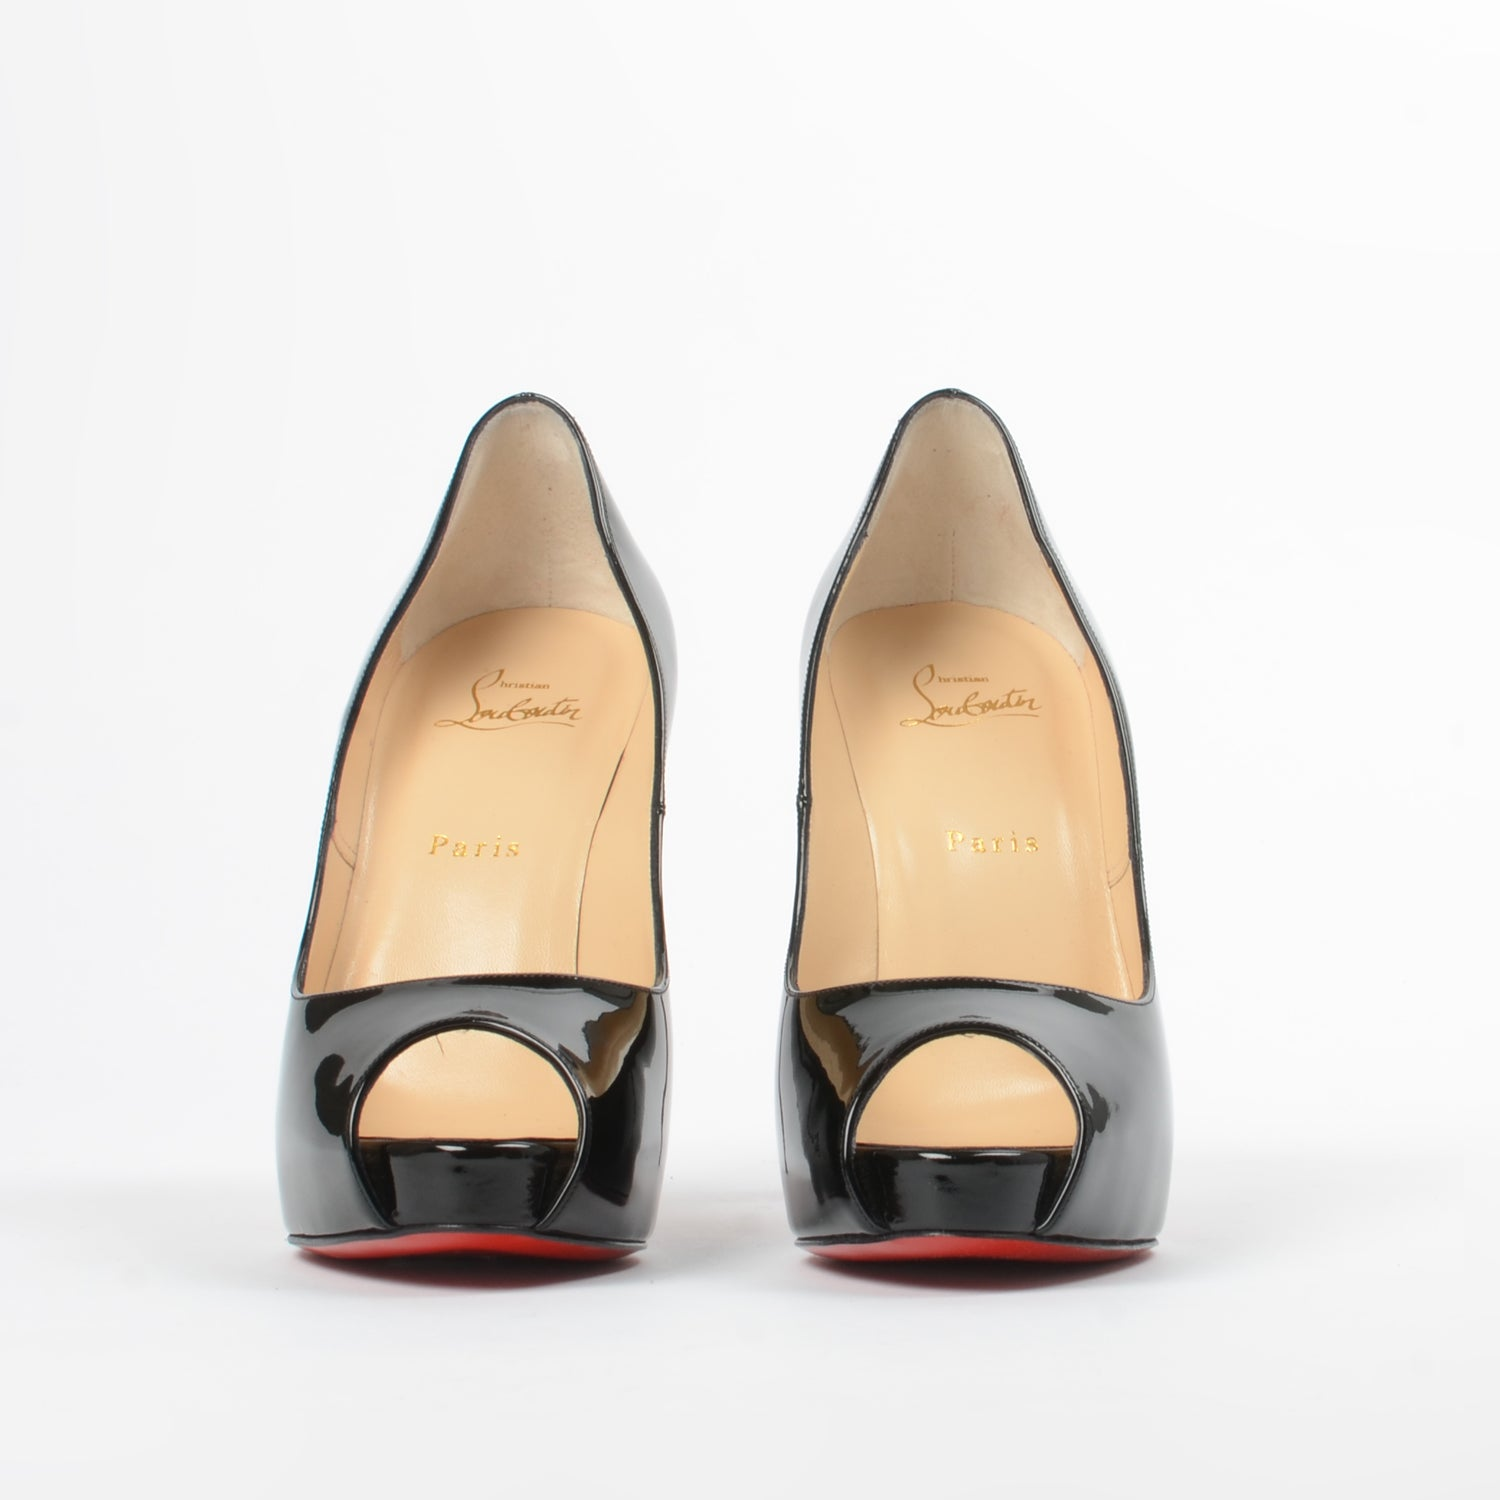 best website c030b ecca6 Christian Louboutin New Very Prive 120 mm - Size 40 – The ...